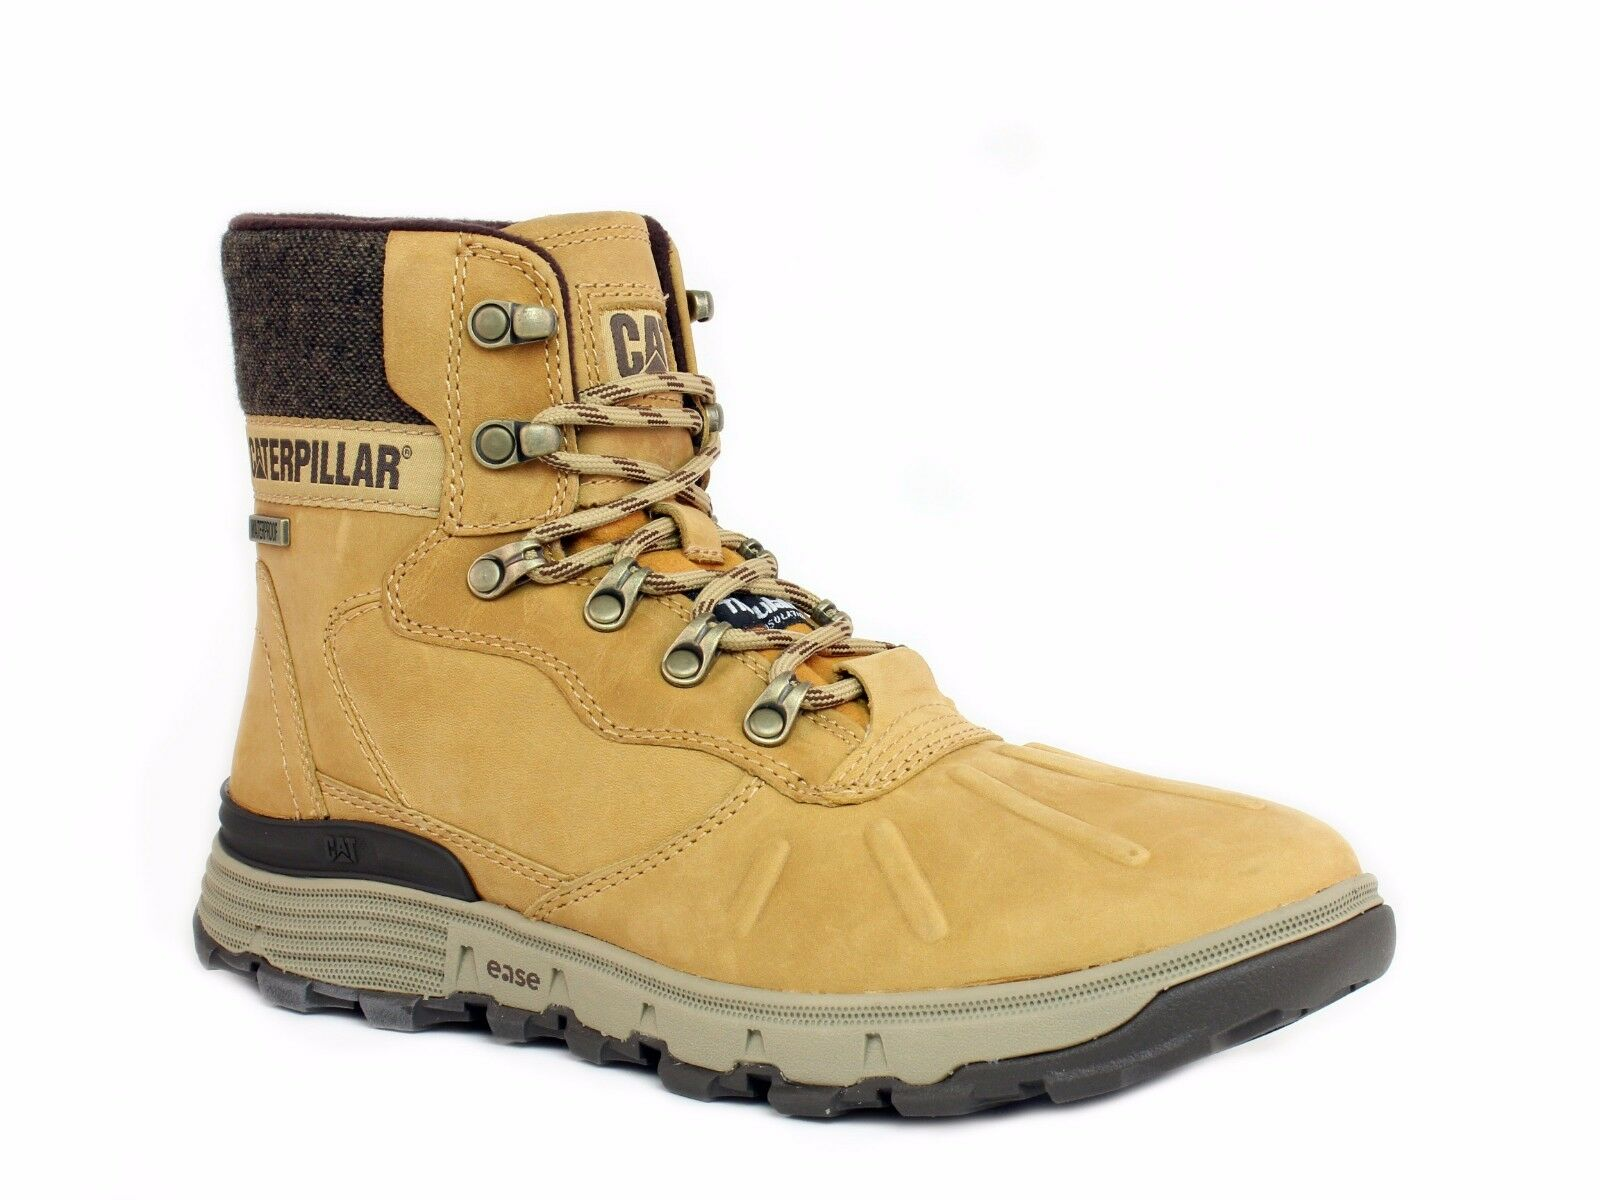 Caterpillar STICTION HI ICE+W Waterproof Mens Insulated Honey Leather Boots